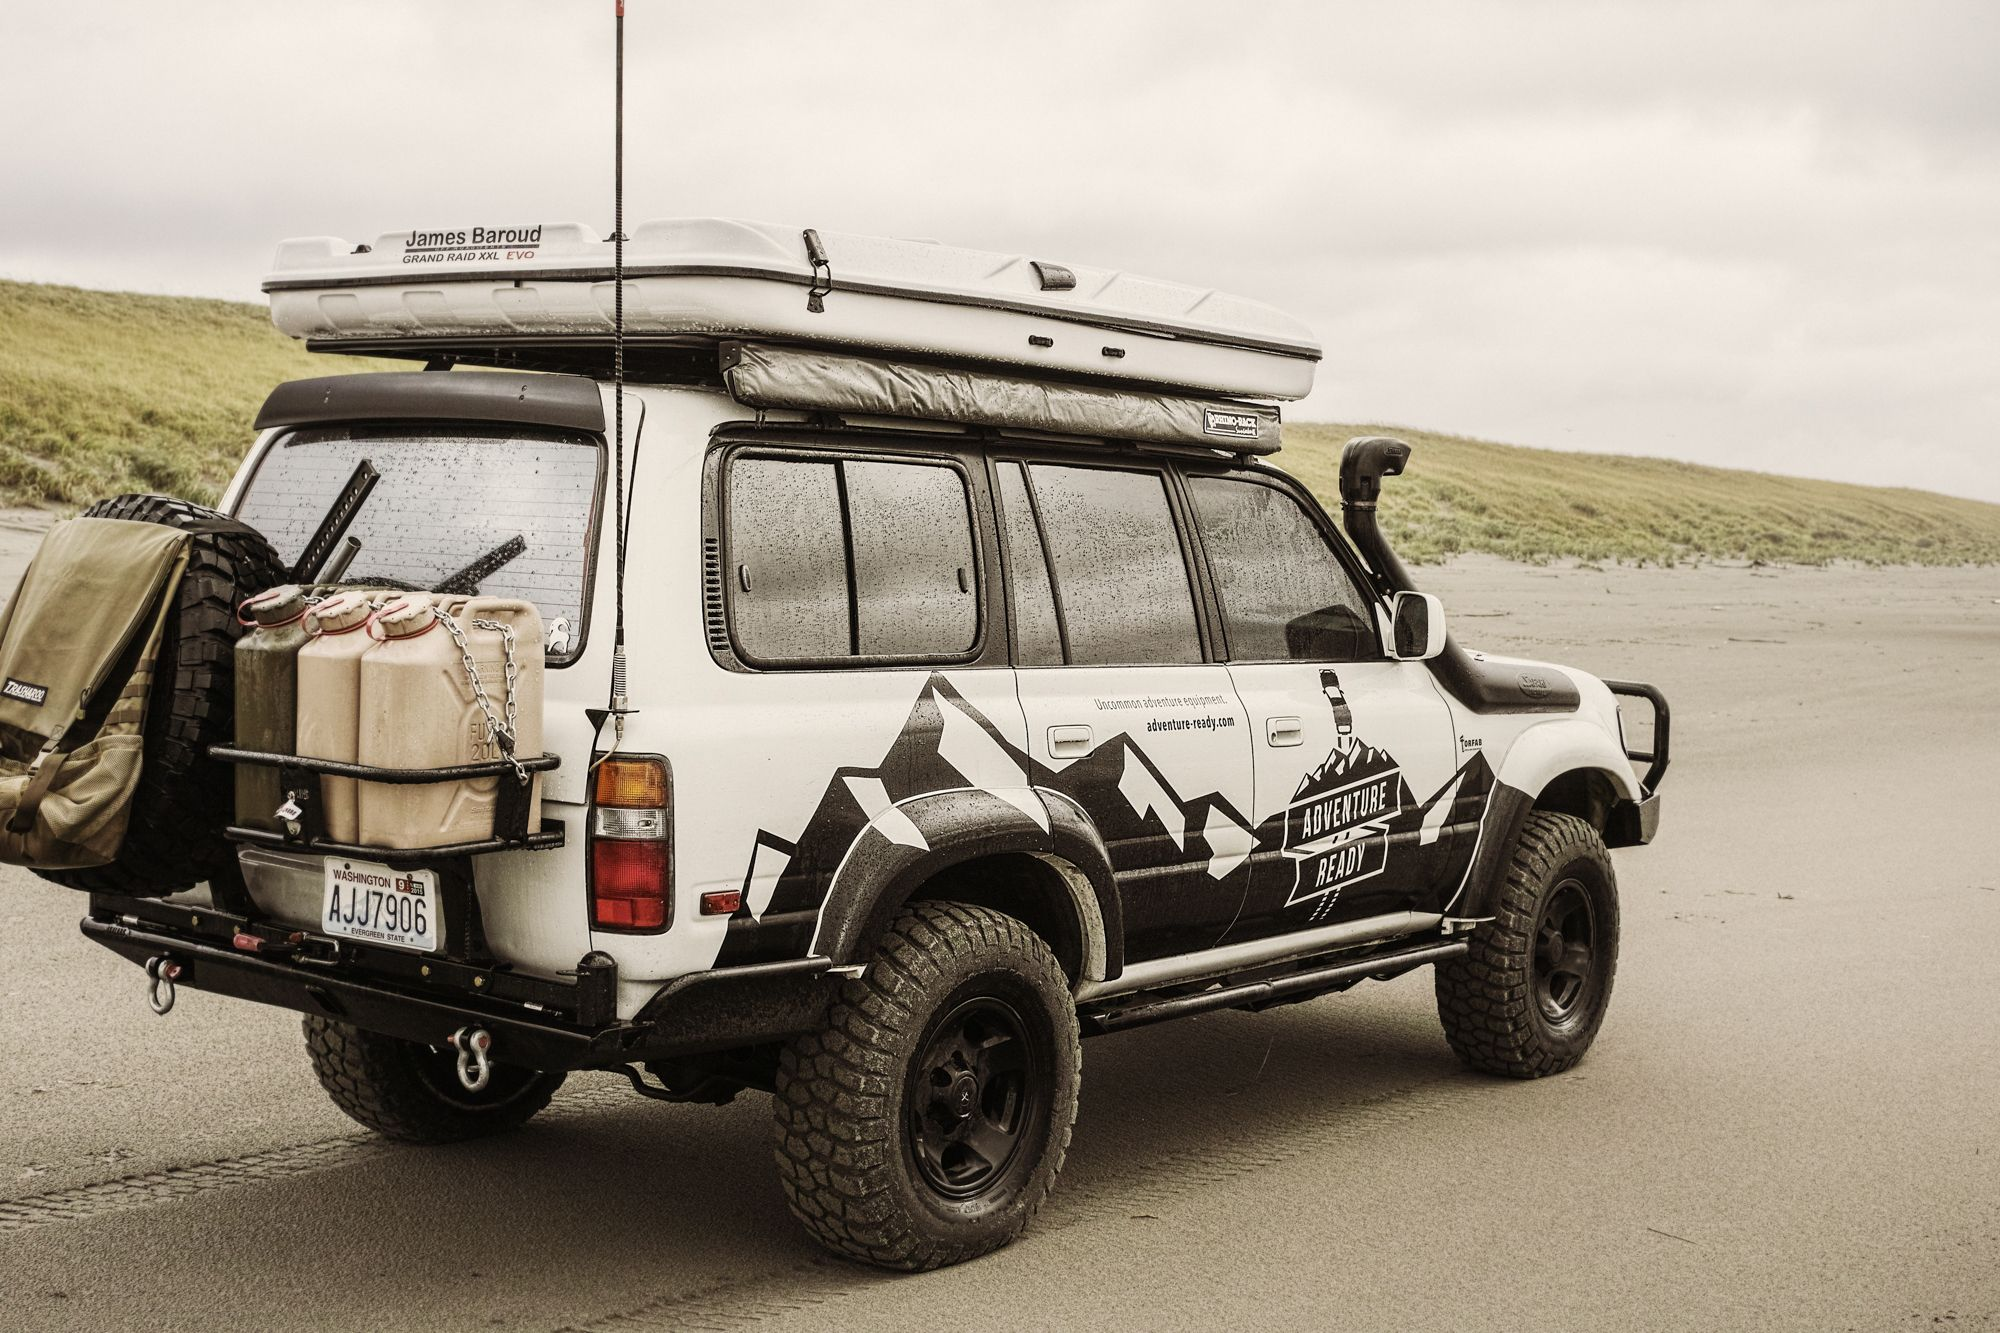 James Baroud Rooftop Tents & James Baroud Grand Raid XXL Rooftop Tent | Off Road 4x4 travel ...